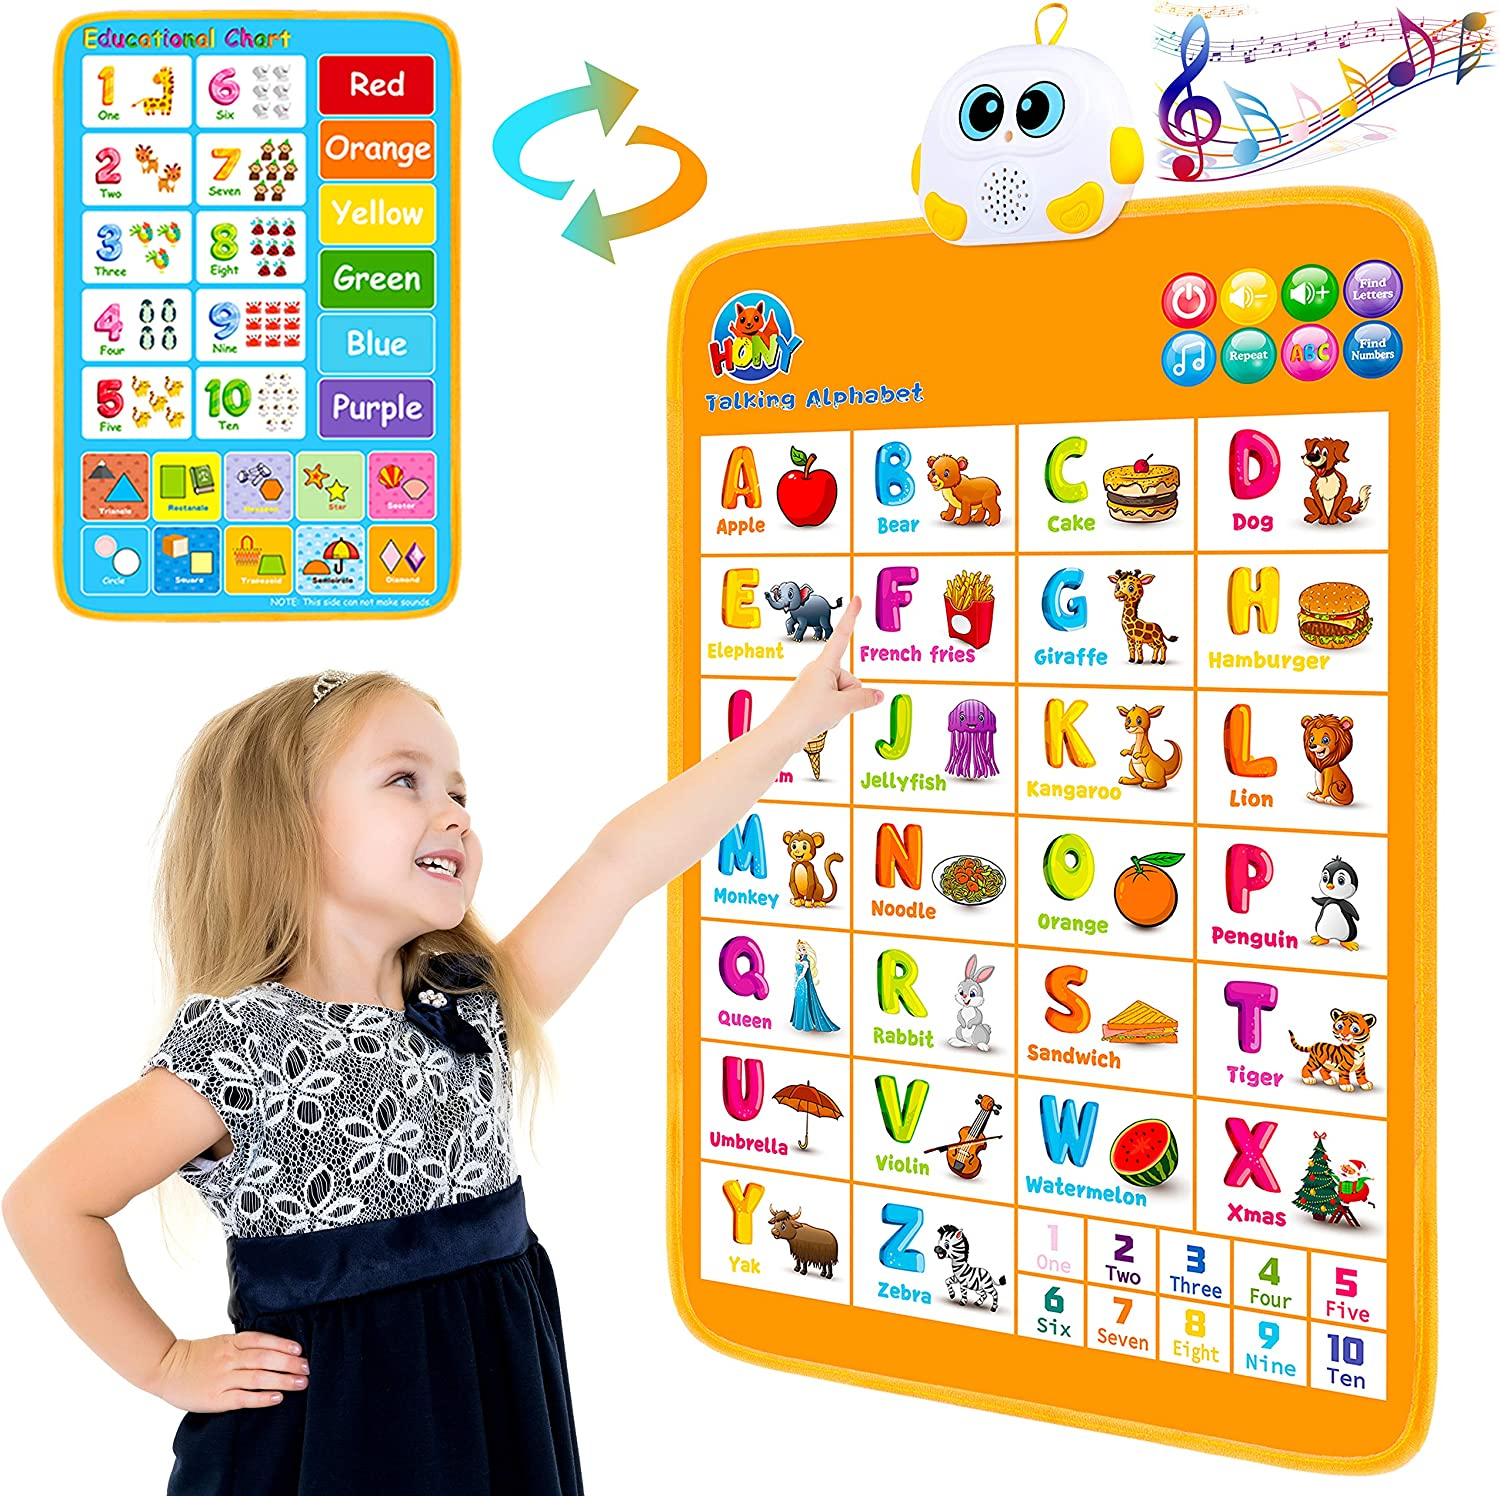 Electronic Interactive Alphabet Wall Chart, Talking ABC & 123s & Music Poster, Educational Toy for Toddlers Kids Learning Toys for 1 2 3 4 5 Year Old Girls Boys Birthday Gifts at Daycare,Preschool